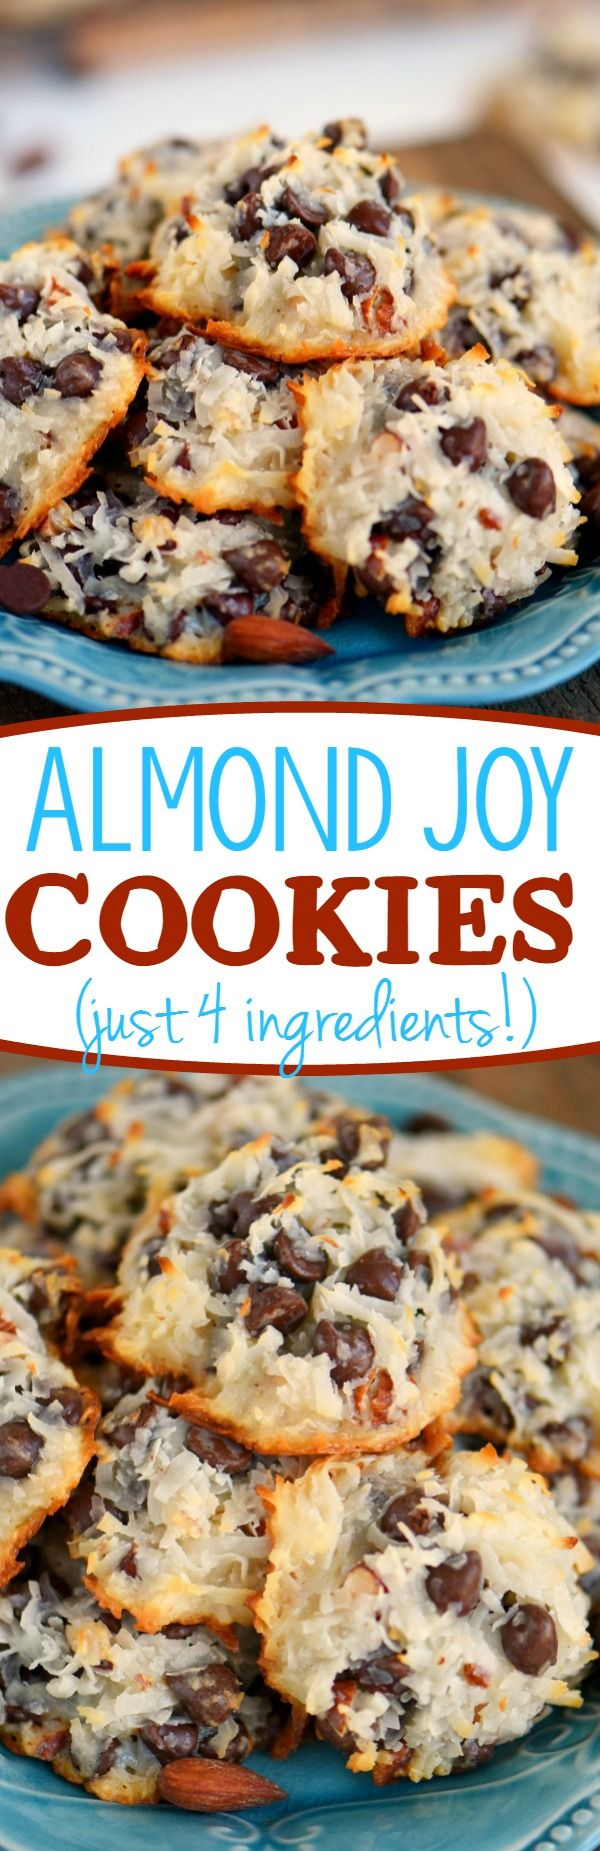 These easy Almond Joy Cookies take just four ingredients and dont even require a mixer! No beating, no chilling, just mix em up